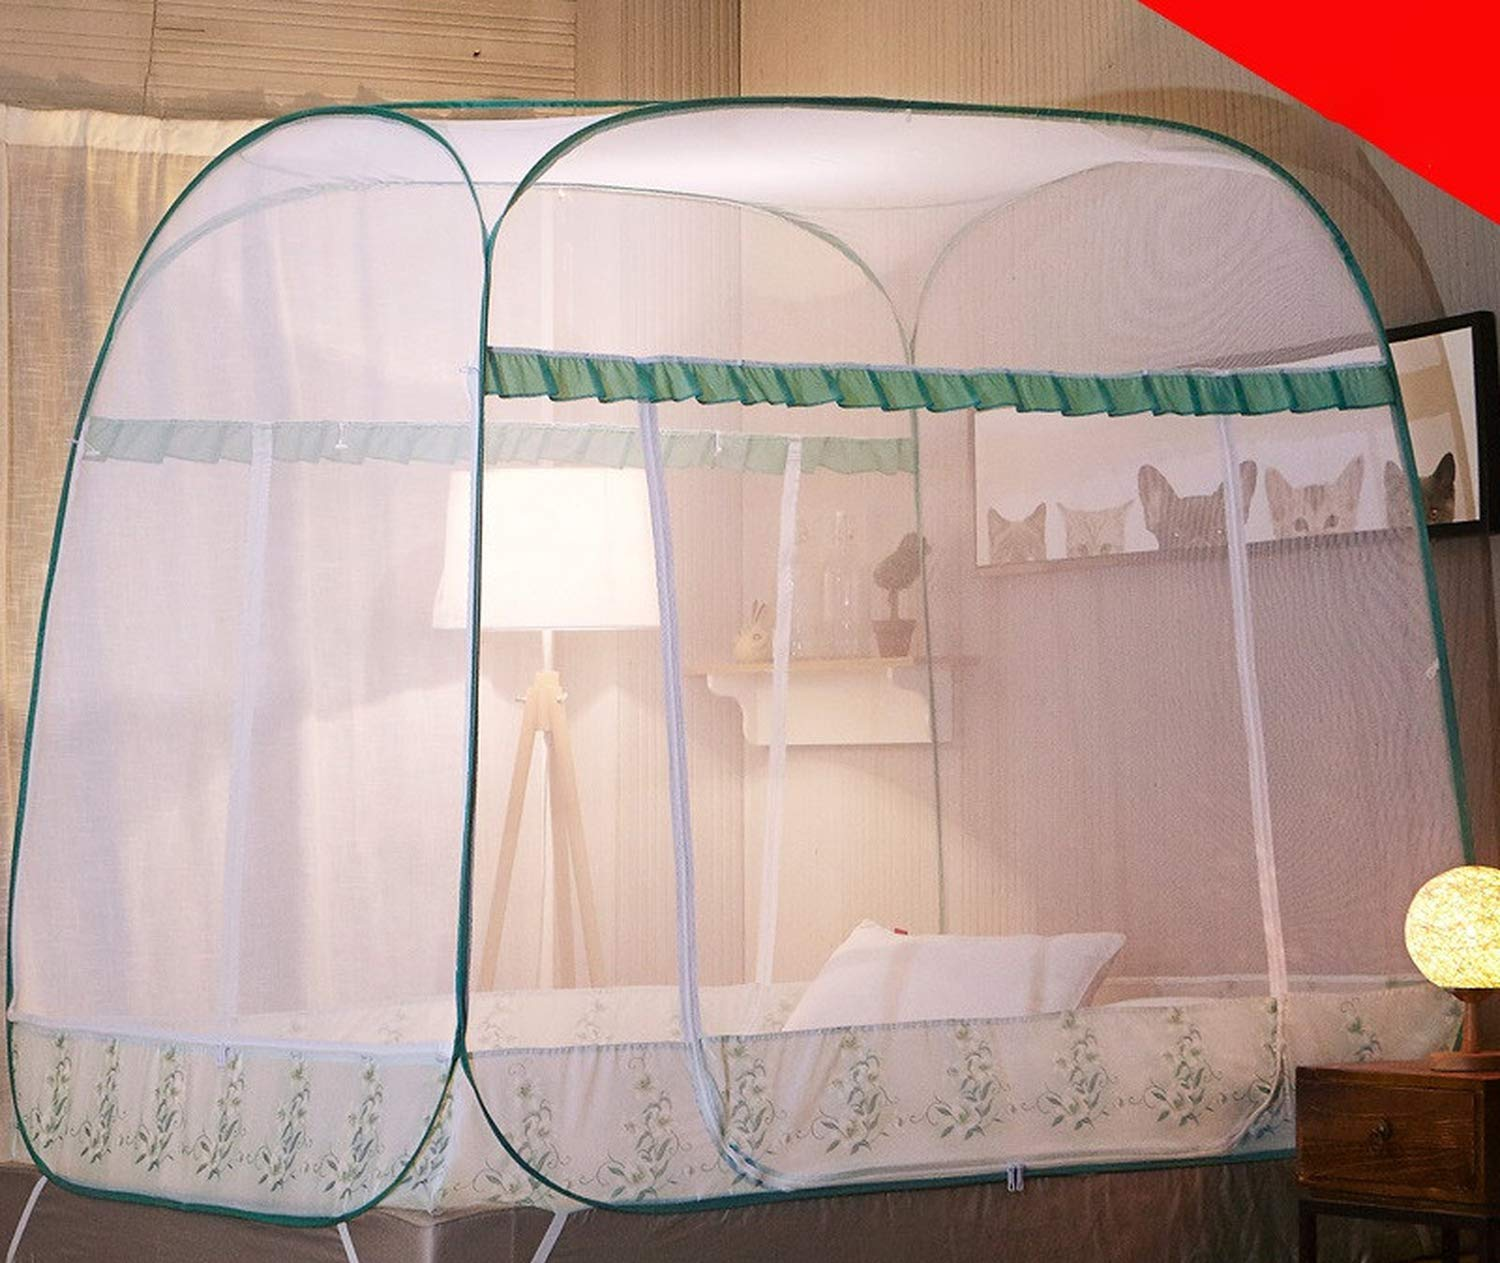 Romantic Elegant Mosquito Net for Home Decor 1.5 1.8m Double Bed Net Princess Bed Mosquito Net Tent Mesh Netting,Green Full-Bottom,1.8m (6 feet) Bed by SuWuan mosquito net (Image #6)